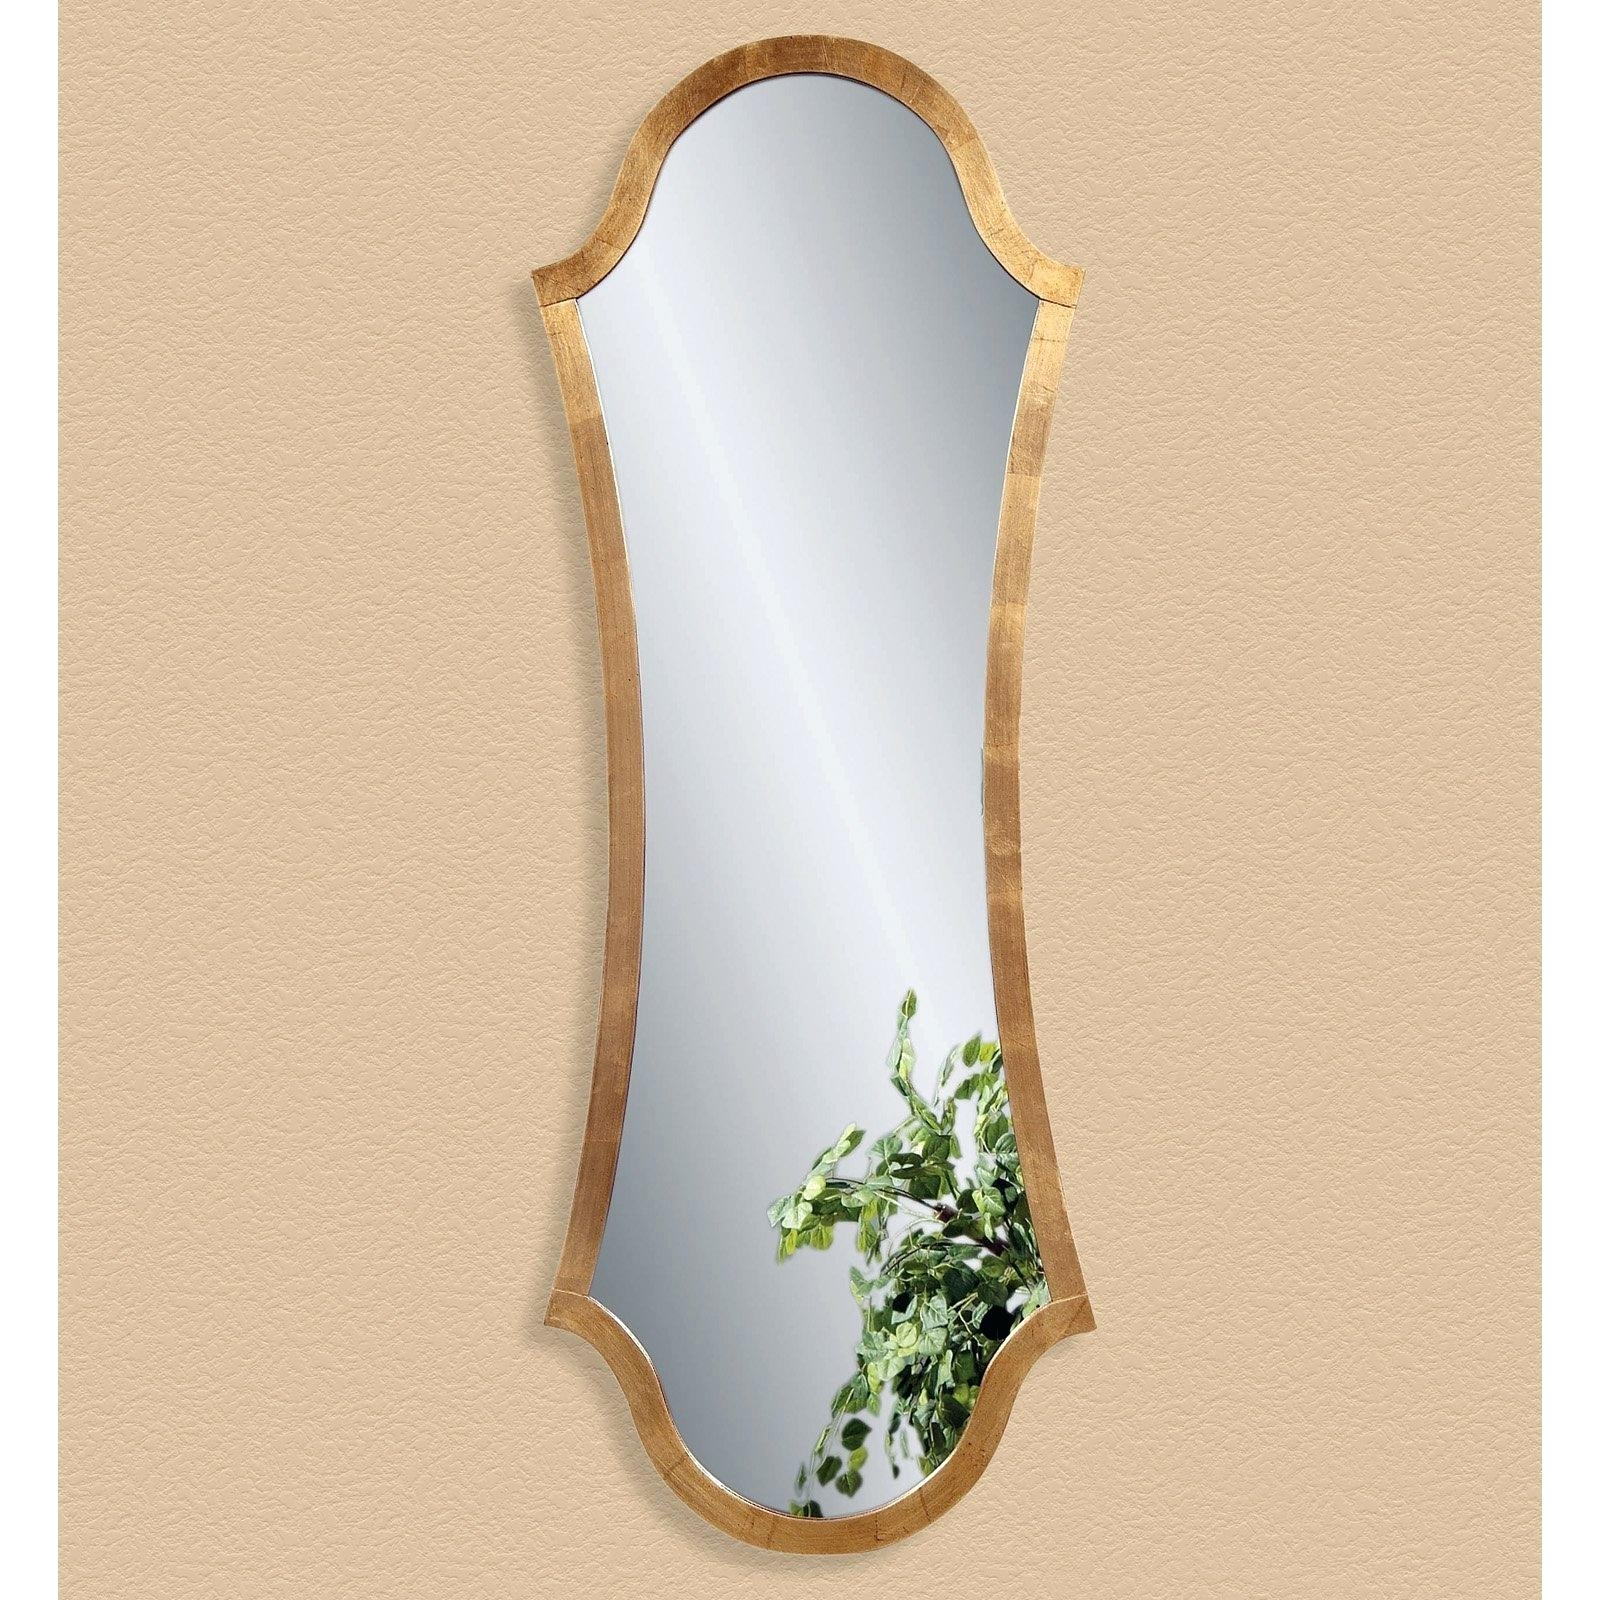 Decorative Full Length Mirror Pitchloveco Within Decorative Full Length Mirror (Image 7 of 15)